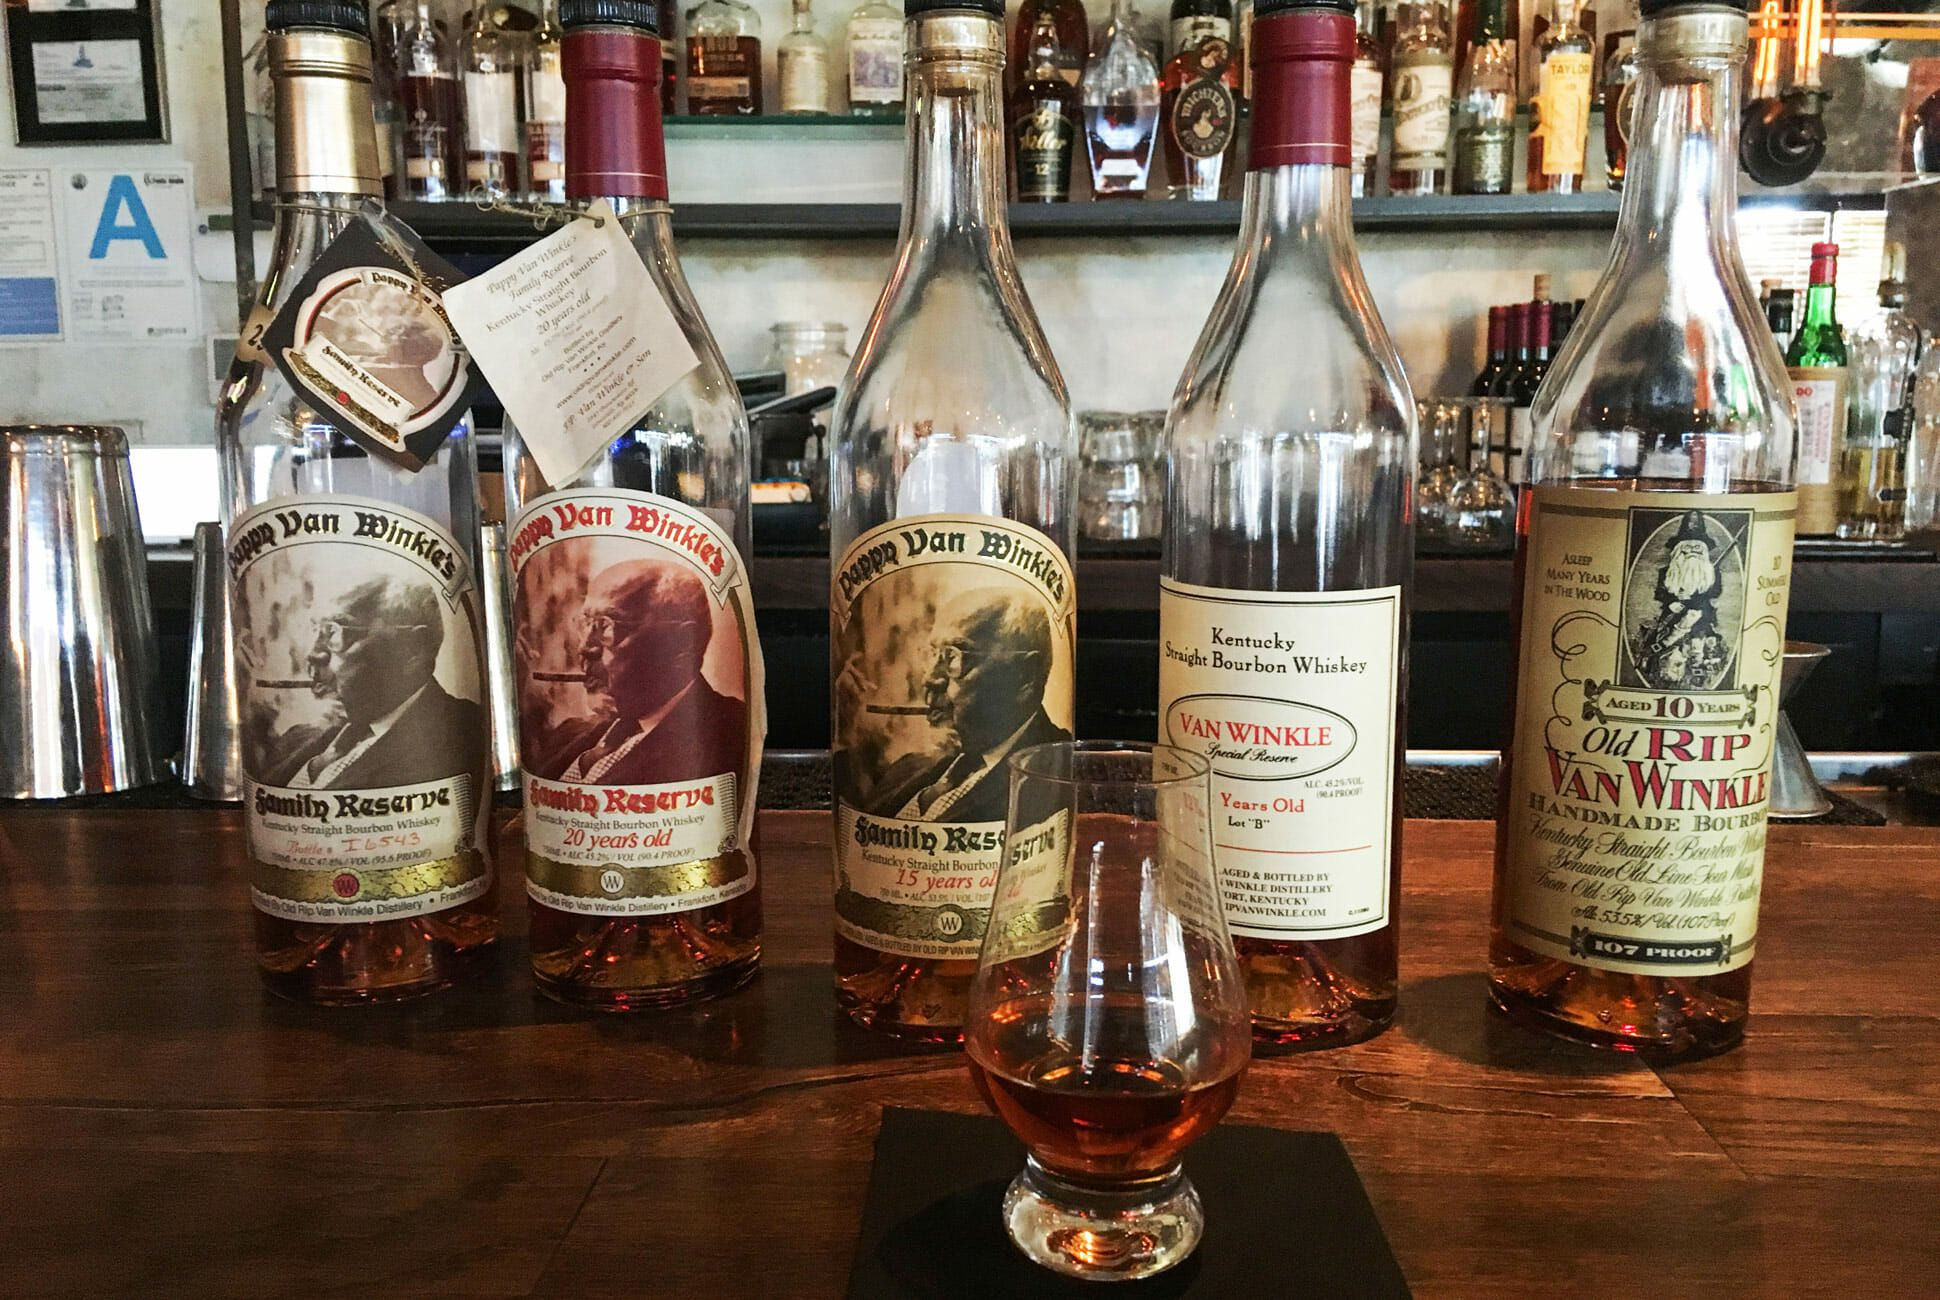 I Tried To Buy Pappy Van Winkle Bourbon For Retail Price